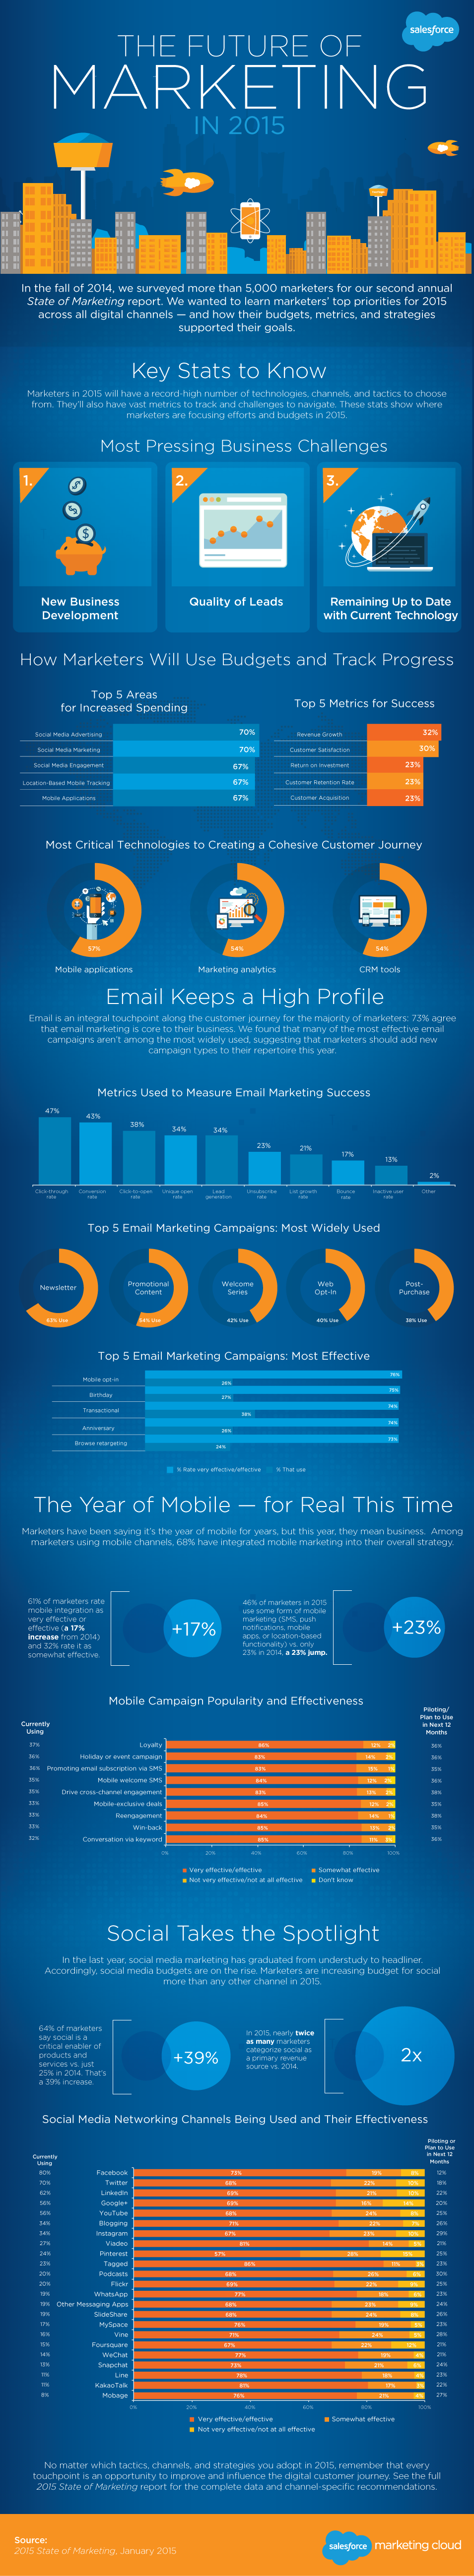 The State of #DigitalMarketing In 2015 - #infographic